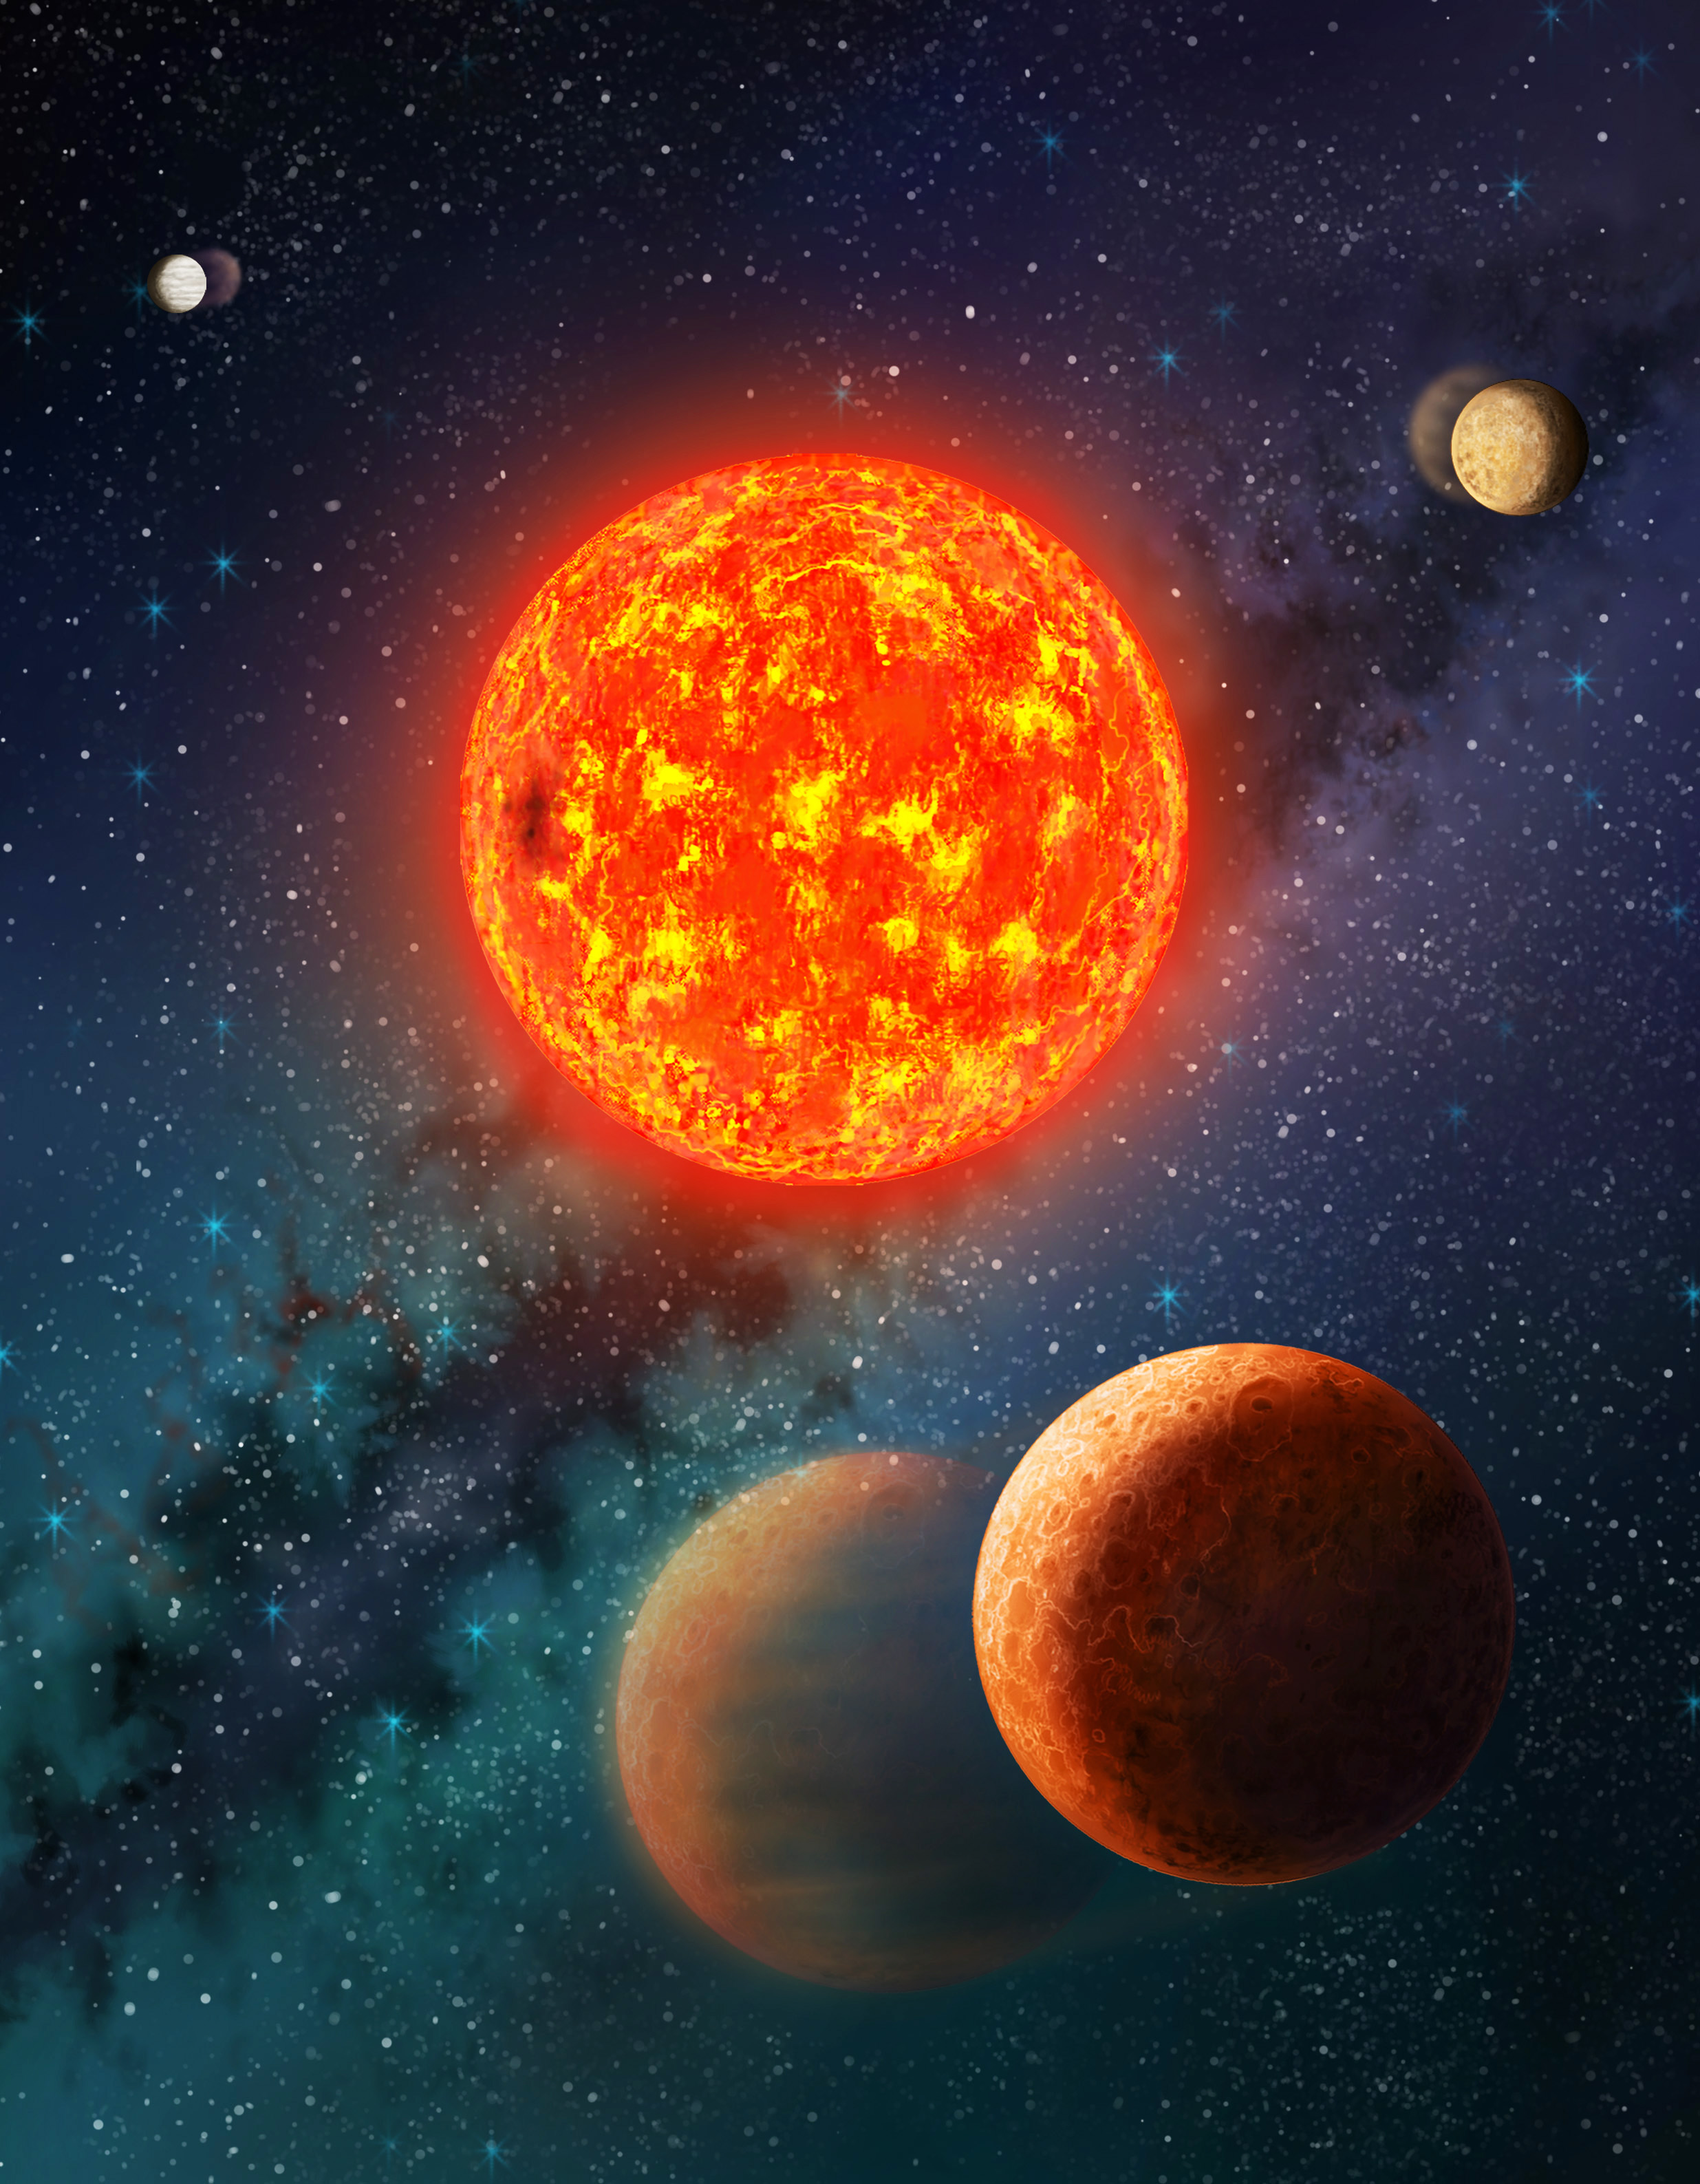 solar system with exoplanets - photo #36